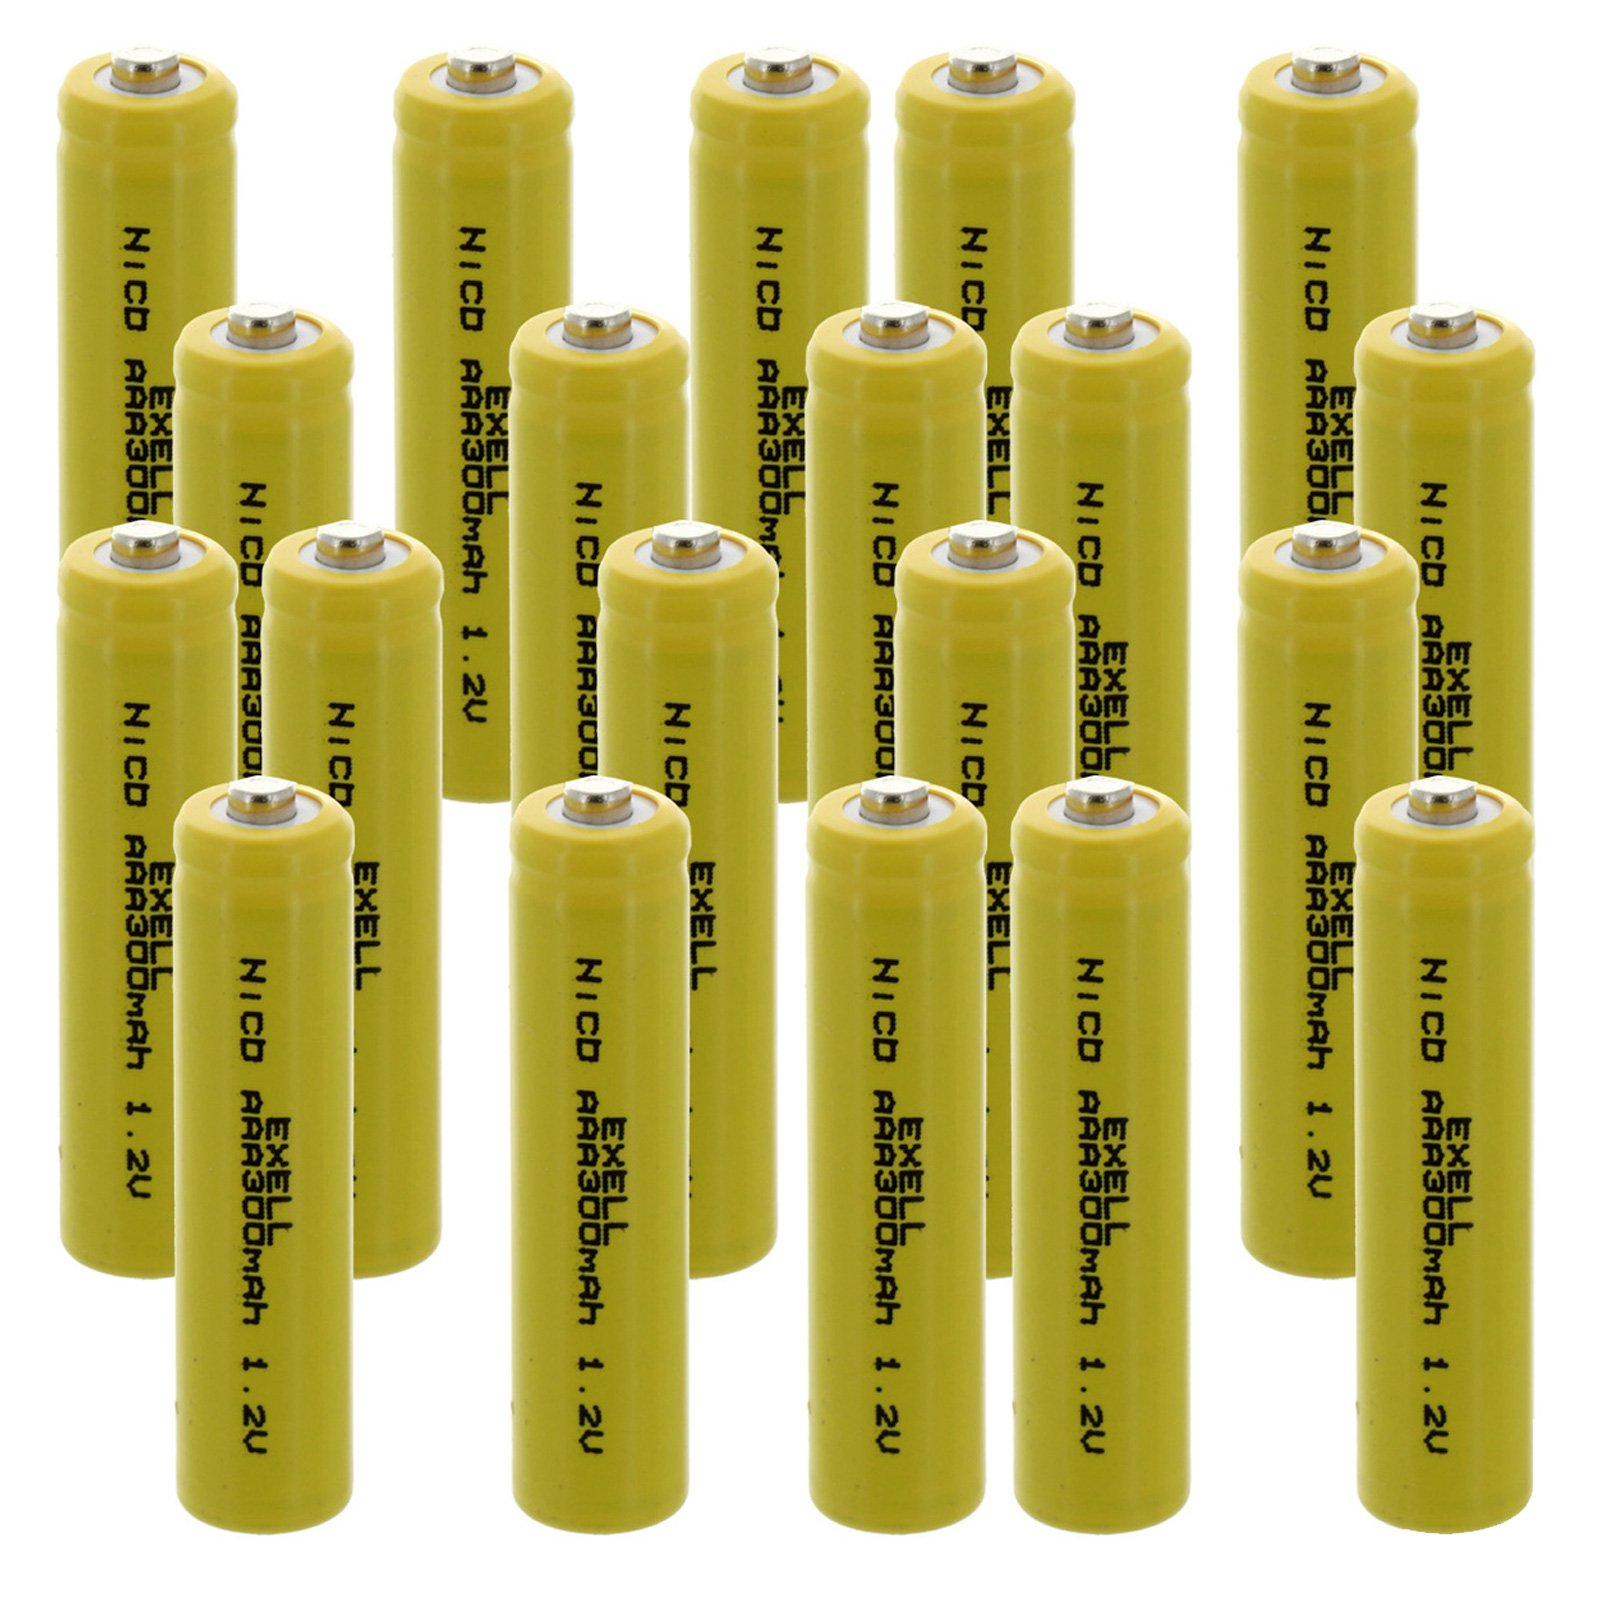 20x Exell AAA 1.2V 300mAh NiCD Button Top Rechargeable Batteries for high power static applications (Telecoms, UPS and Smart grid), electric mopeds, meters, radios, RC devices, electric tools